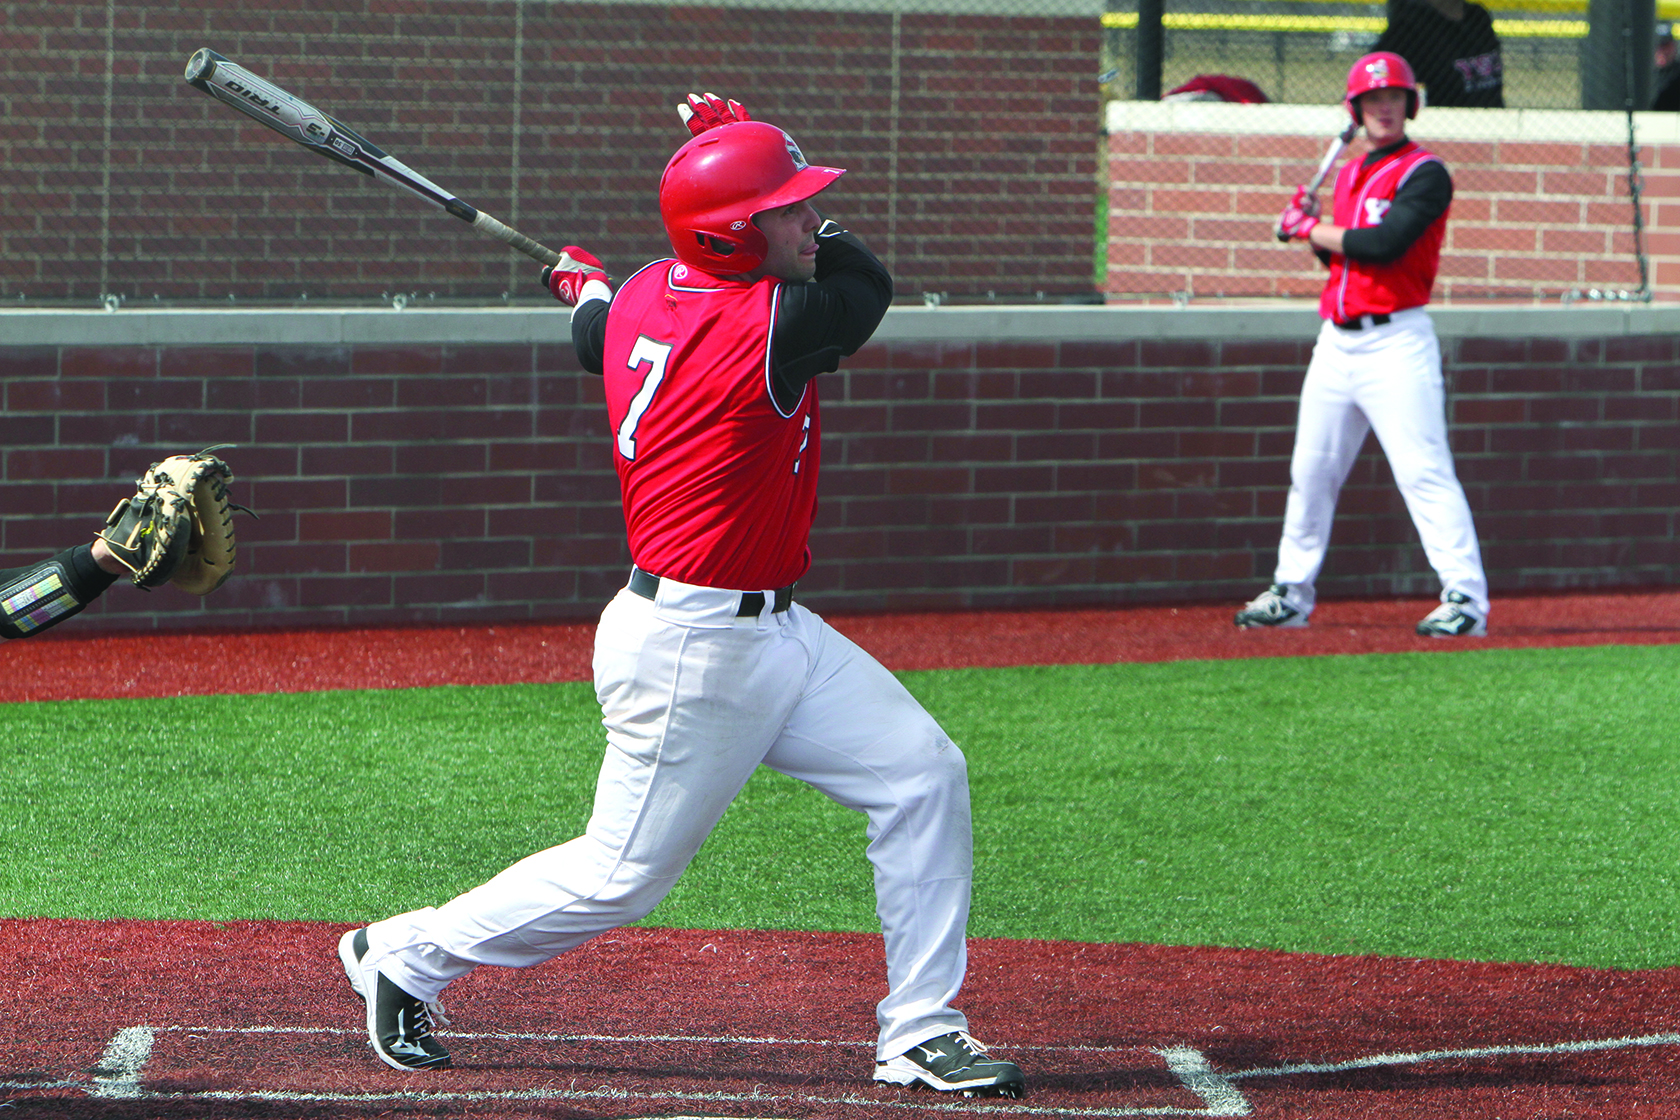 Youngstown State University shortstop Shane Willoughby (7) went 2-3 and scored two RBIs in the Penguins 6-3 win against Oakland University on April 2. Willoughby drove in the Penguins final insurance run in the bottom of the ninth inning. Photo courtesy of Ron Stevens.